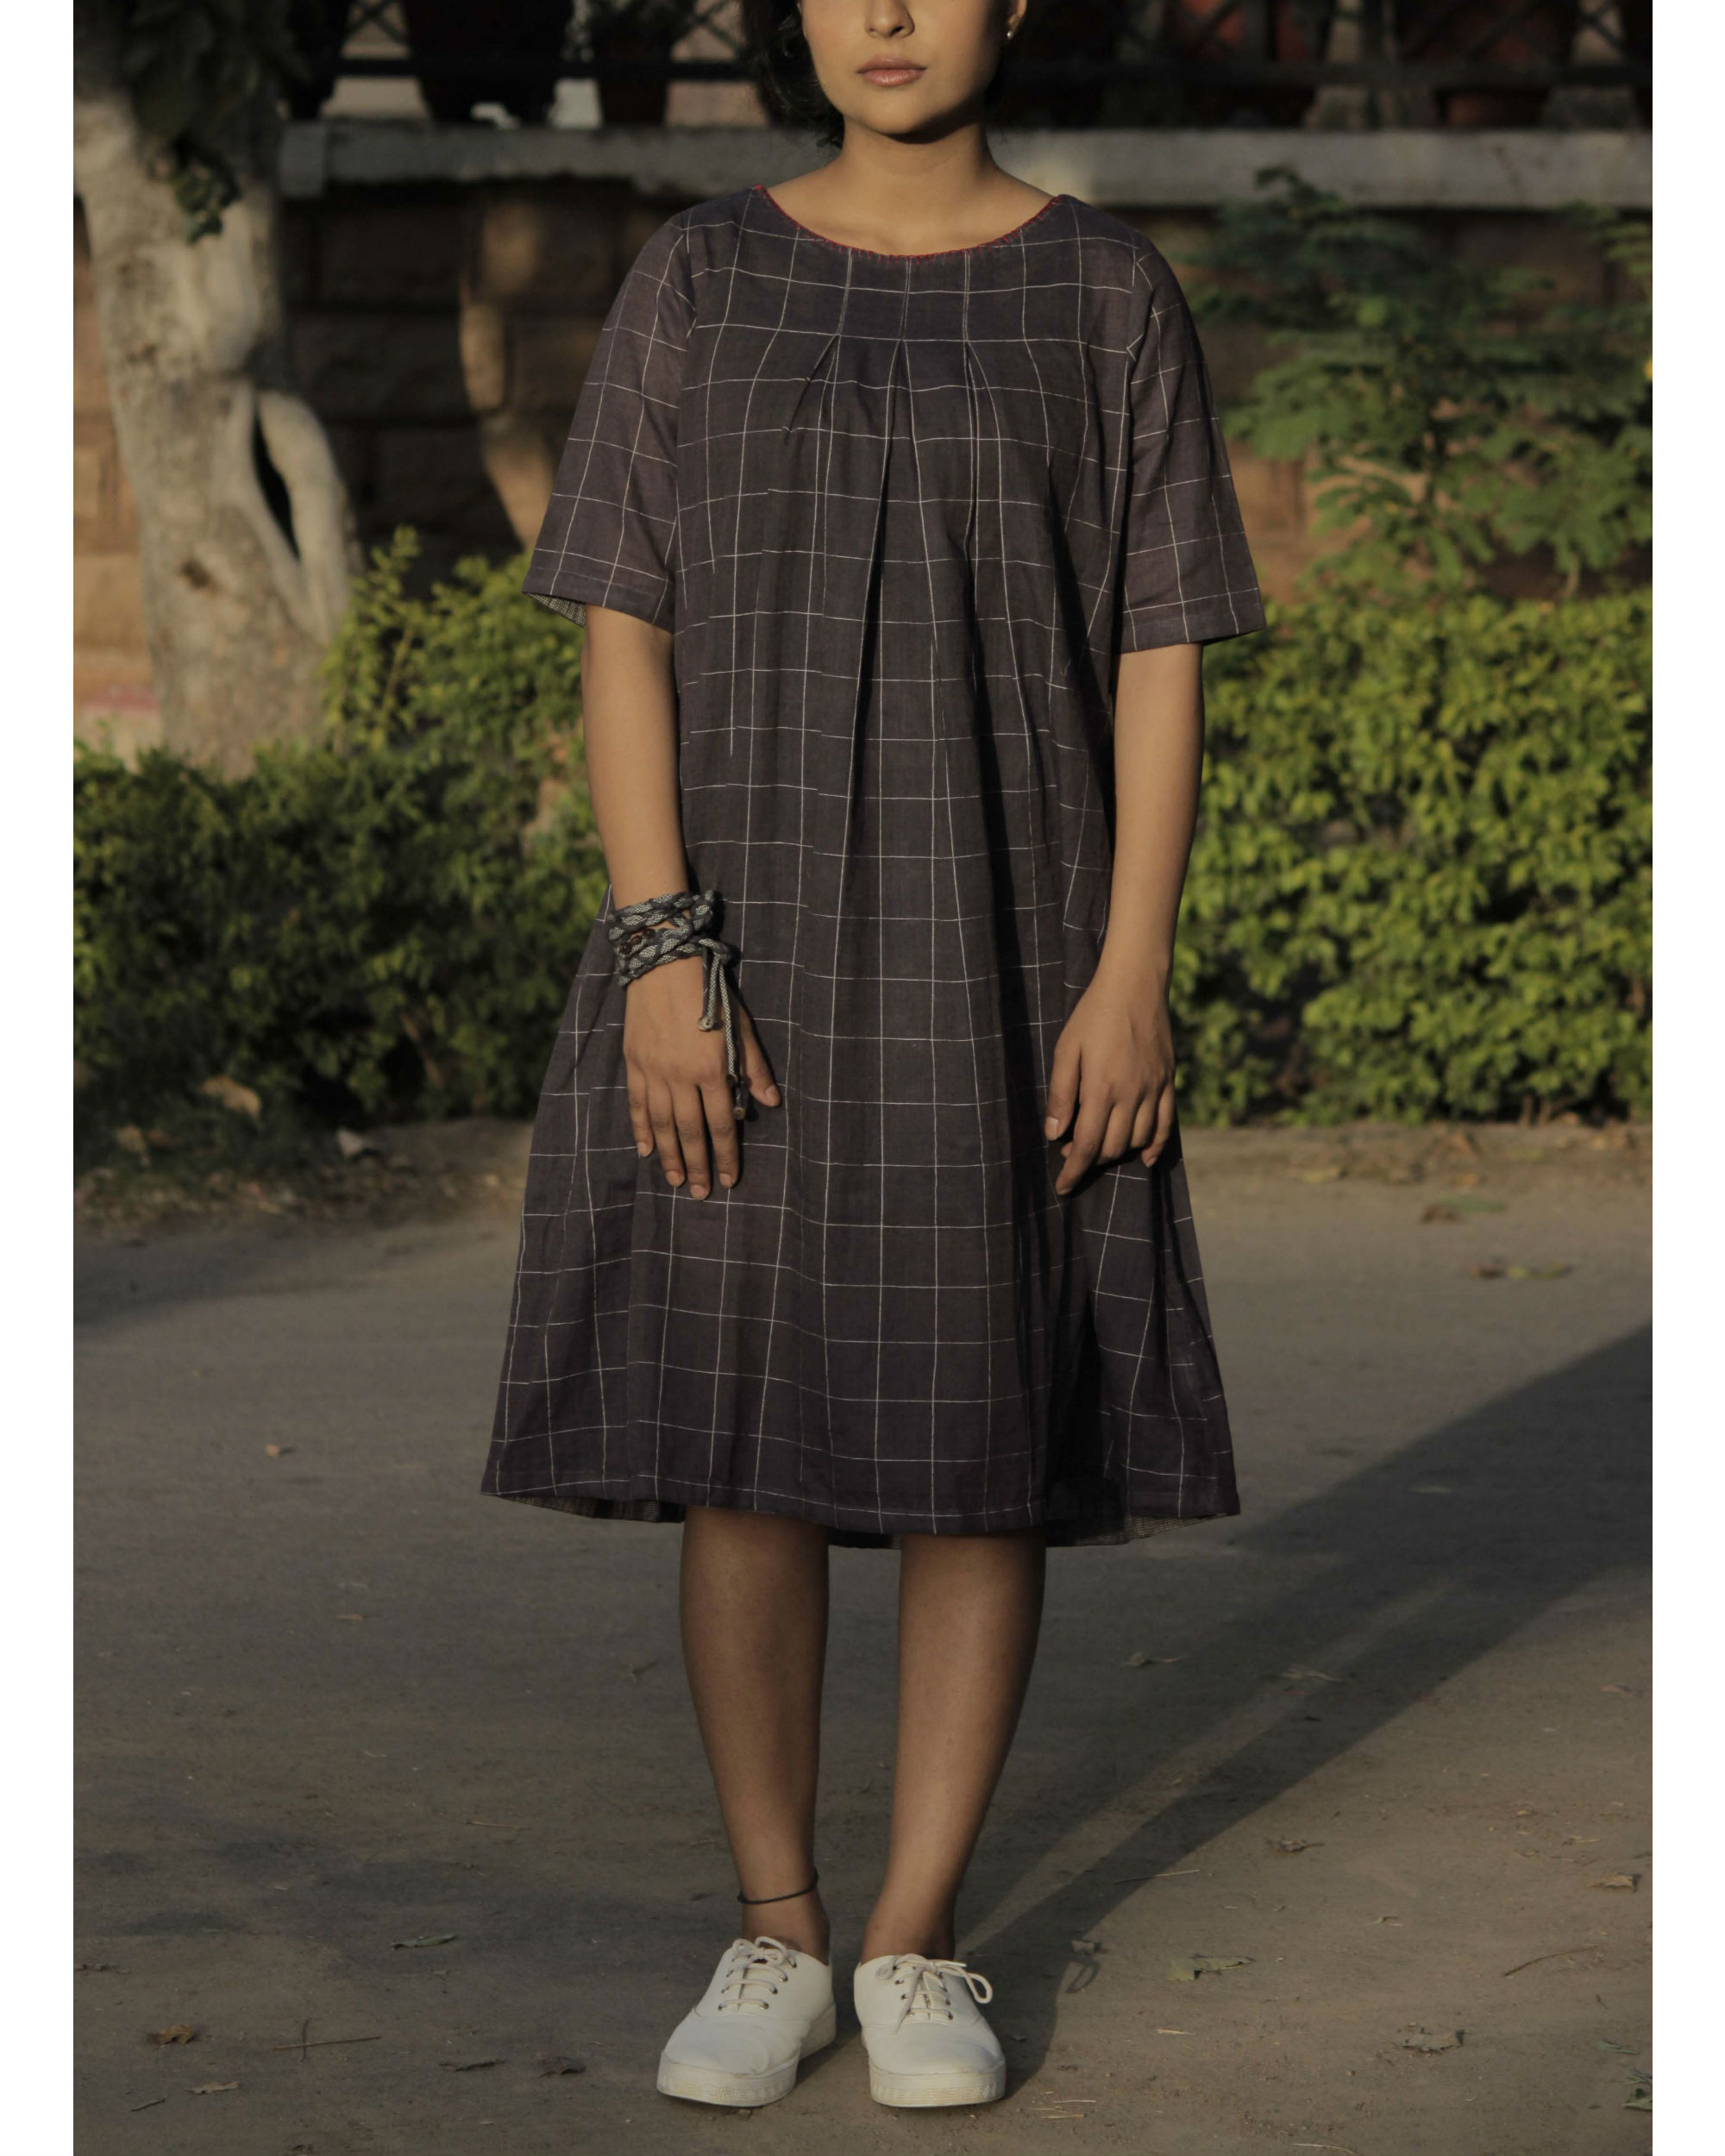 Pleated brown checkered dress